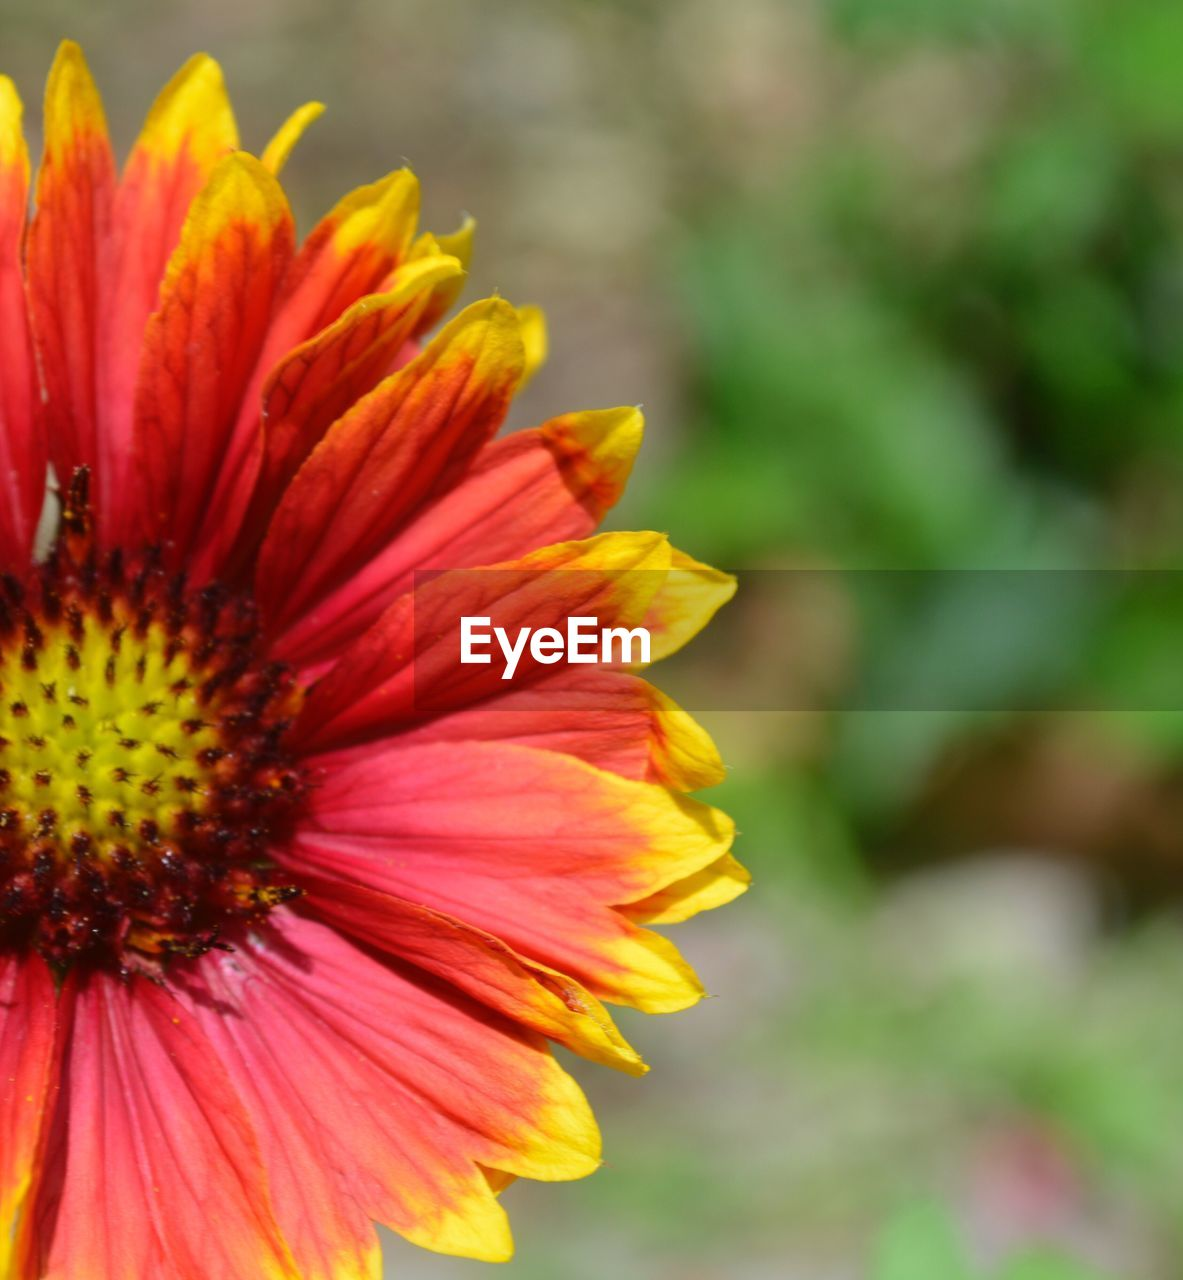 flower, petal, beauty in nature, fragility, nature, flower head, growth, close-up, focus on foreground, freshness, blooming, no people, pollen, outdoors, yellow, plant, day